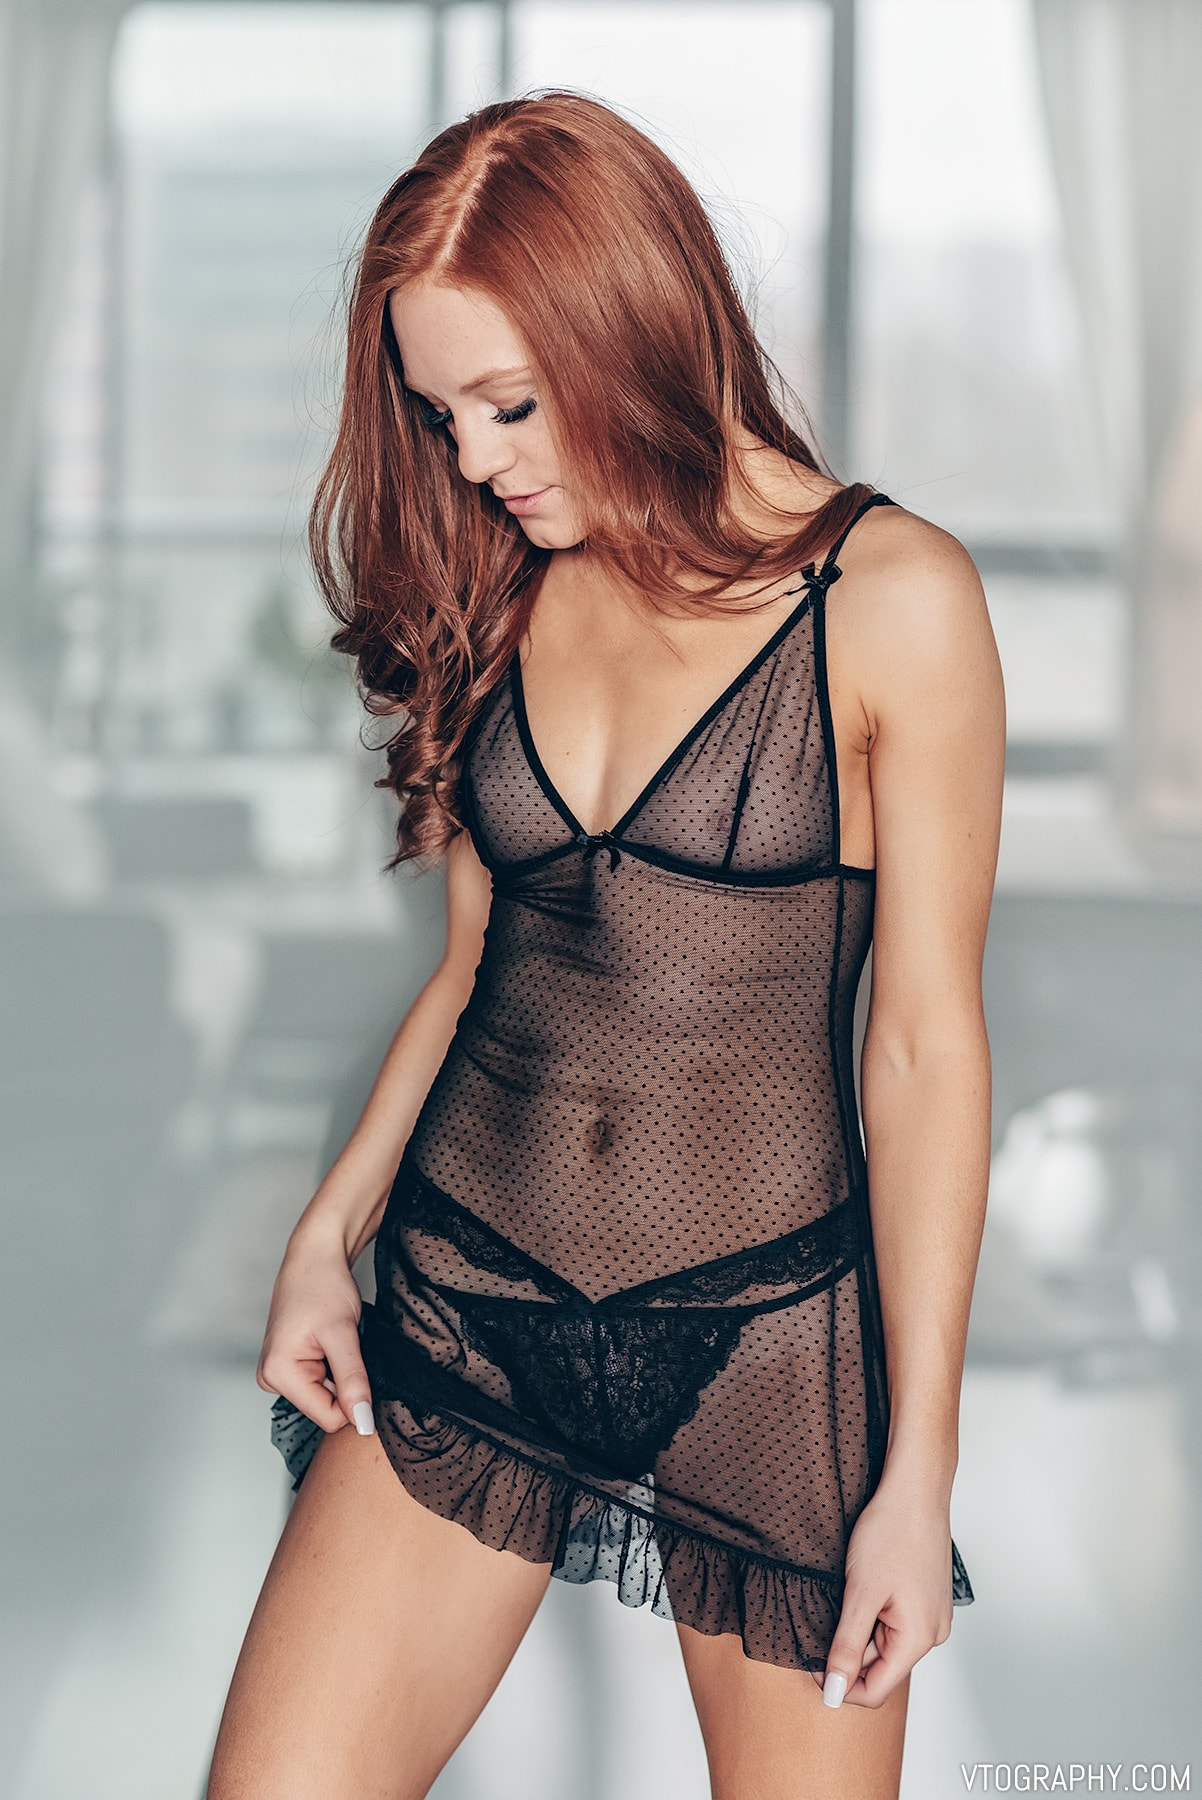 Redhead model Hannah in La Vie En Rose lingerie